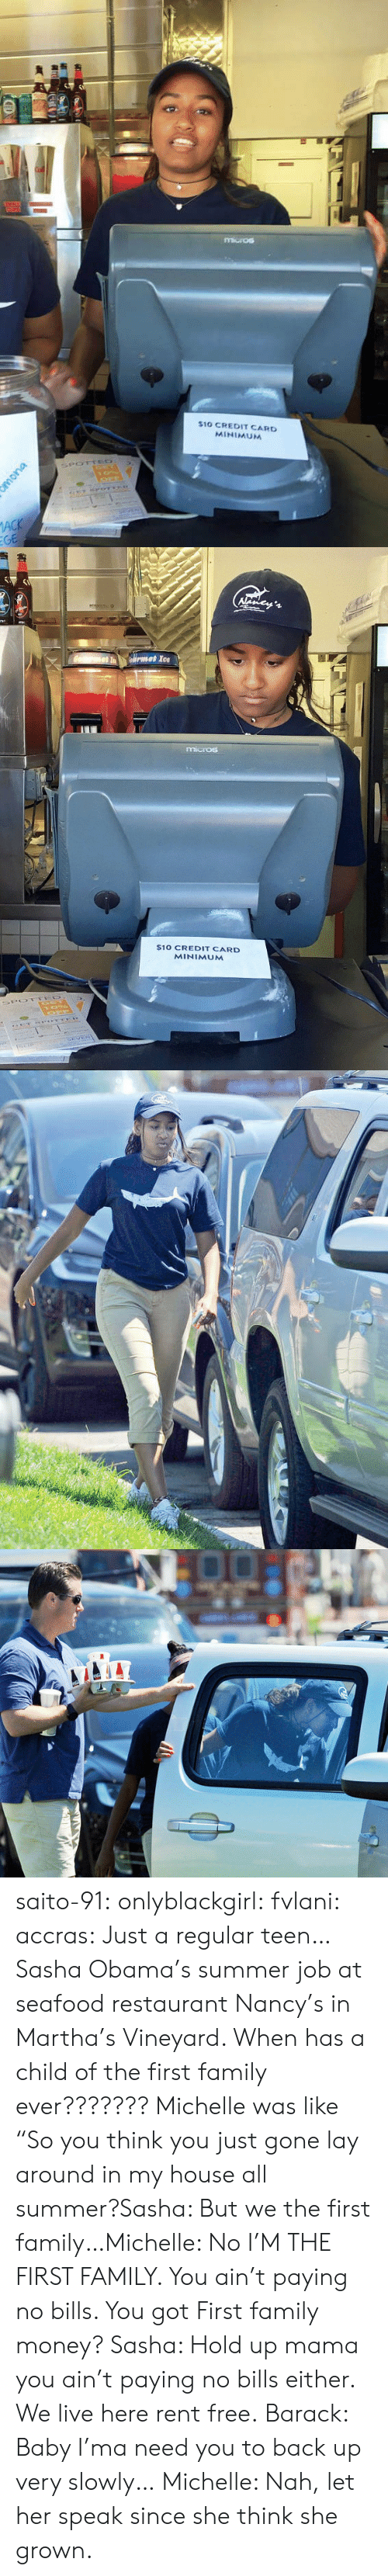 """Family, Money, and My House: $10 CREDIT CARD  MINIMUM   $10 CREDIT CARD  MINIMUM saito-91:  onlyblackgirl:  fvlani:  accras:  Just a regular teen…Sasha Obama's summer job at seafood restaurant Nancy's in Martha's Vineyard.     When has a child of the first family ever???????  Michelle was like """"So you think you just gone lay around in my house all summer?Sasha: But we the first family…Michelle: No I'M THE FIRST FAMILY. You ain't paying no bills. You got First family money?   Sasha: Hold up mama you ain't paying no bills either. We live here rent free. Barack: Baby I'ma need you to back up very slowly… Michelle: Nah, let her speak since she think she grown."""